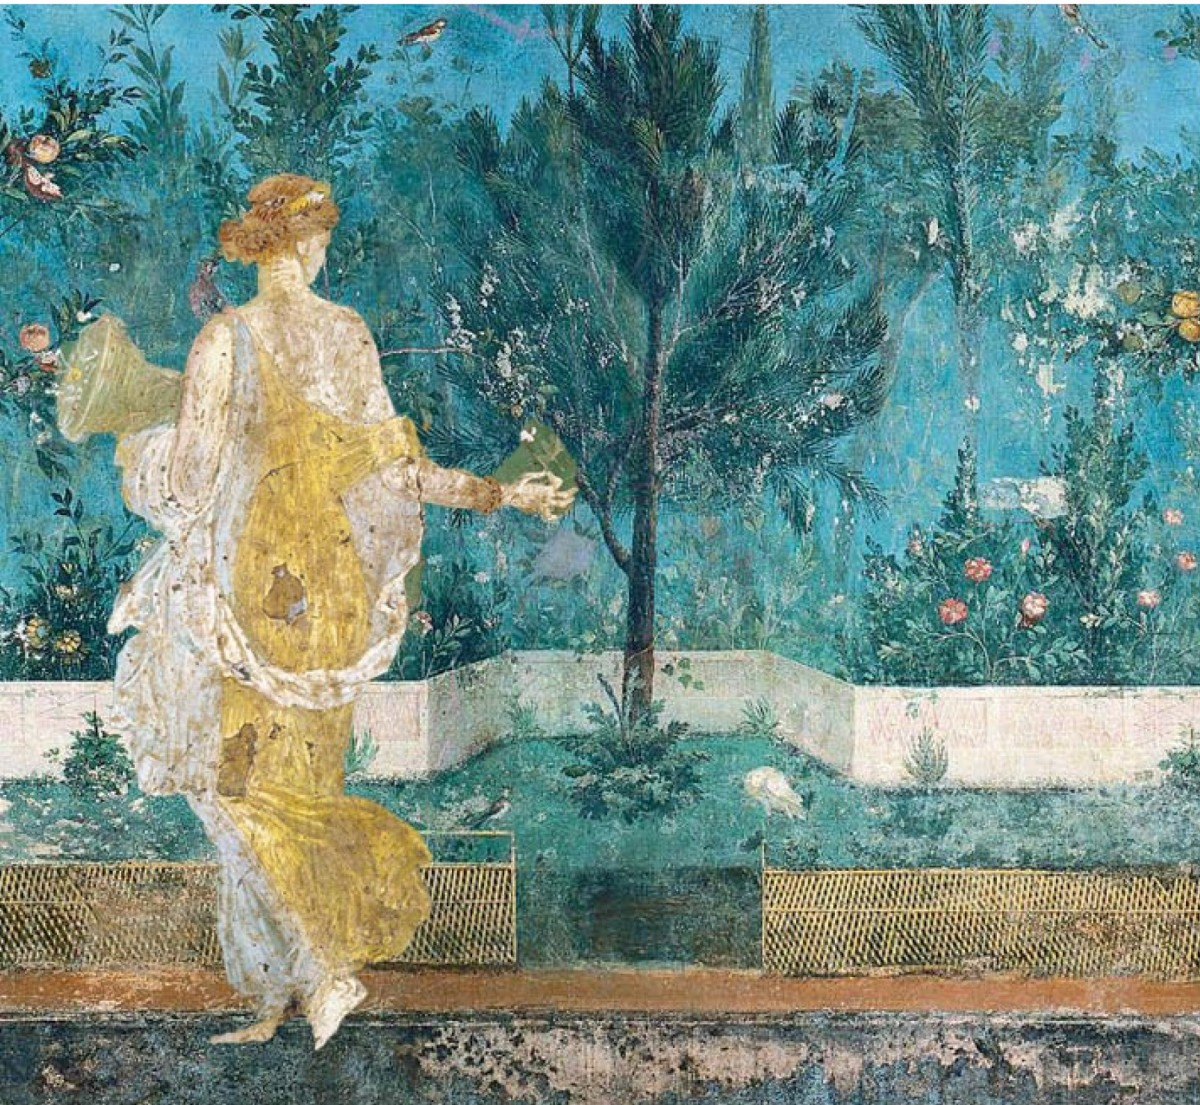 The most significant discovery is that the excavation of ancient Stabiae gives the first definitive archaeological proof of the existence of the type of garden shown in the famous garden fresco of the Villa of Livia at Prima Porta, a sort of fictive thicket of miniaturized plants carefully shaped in layers.